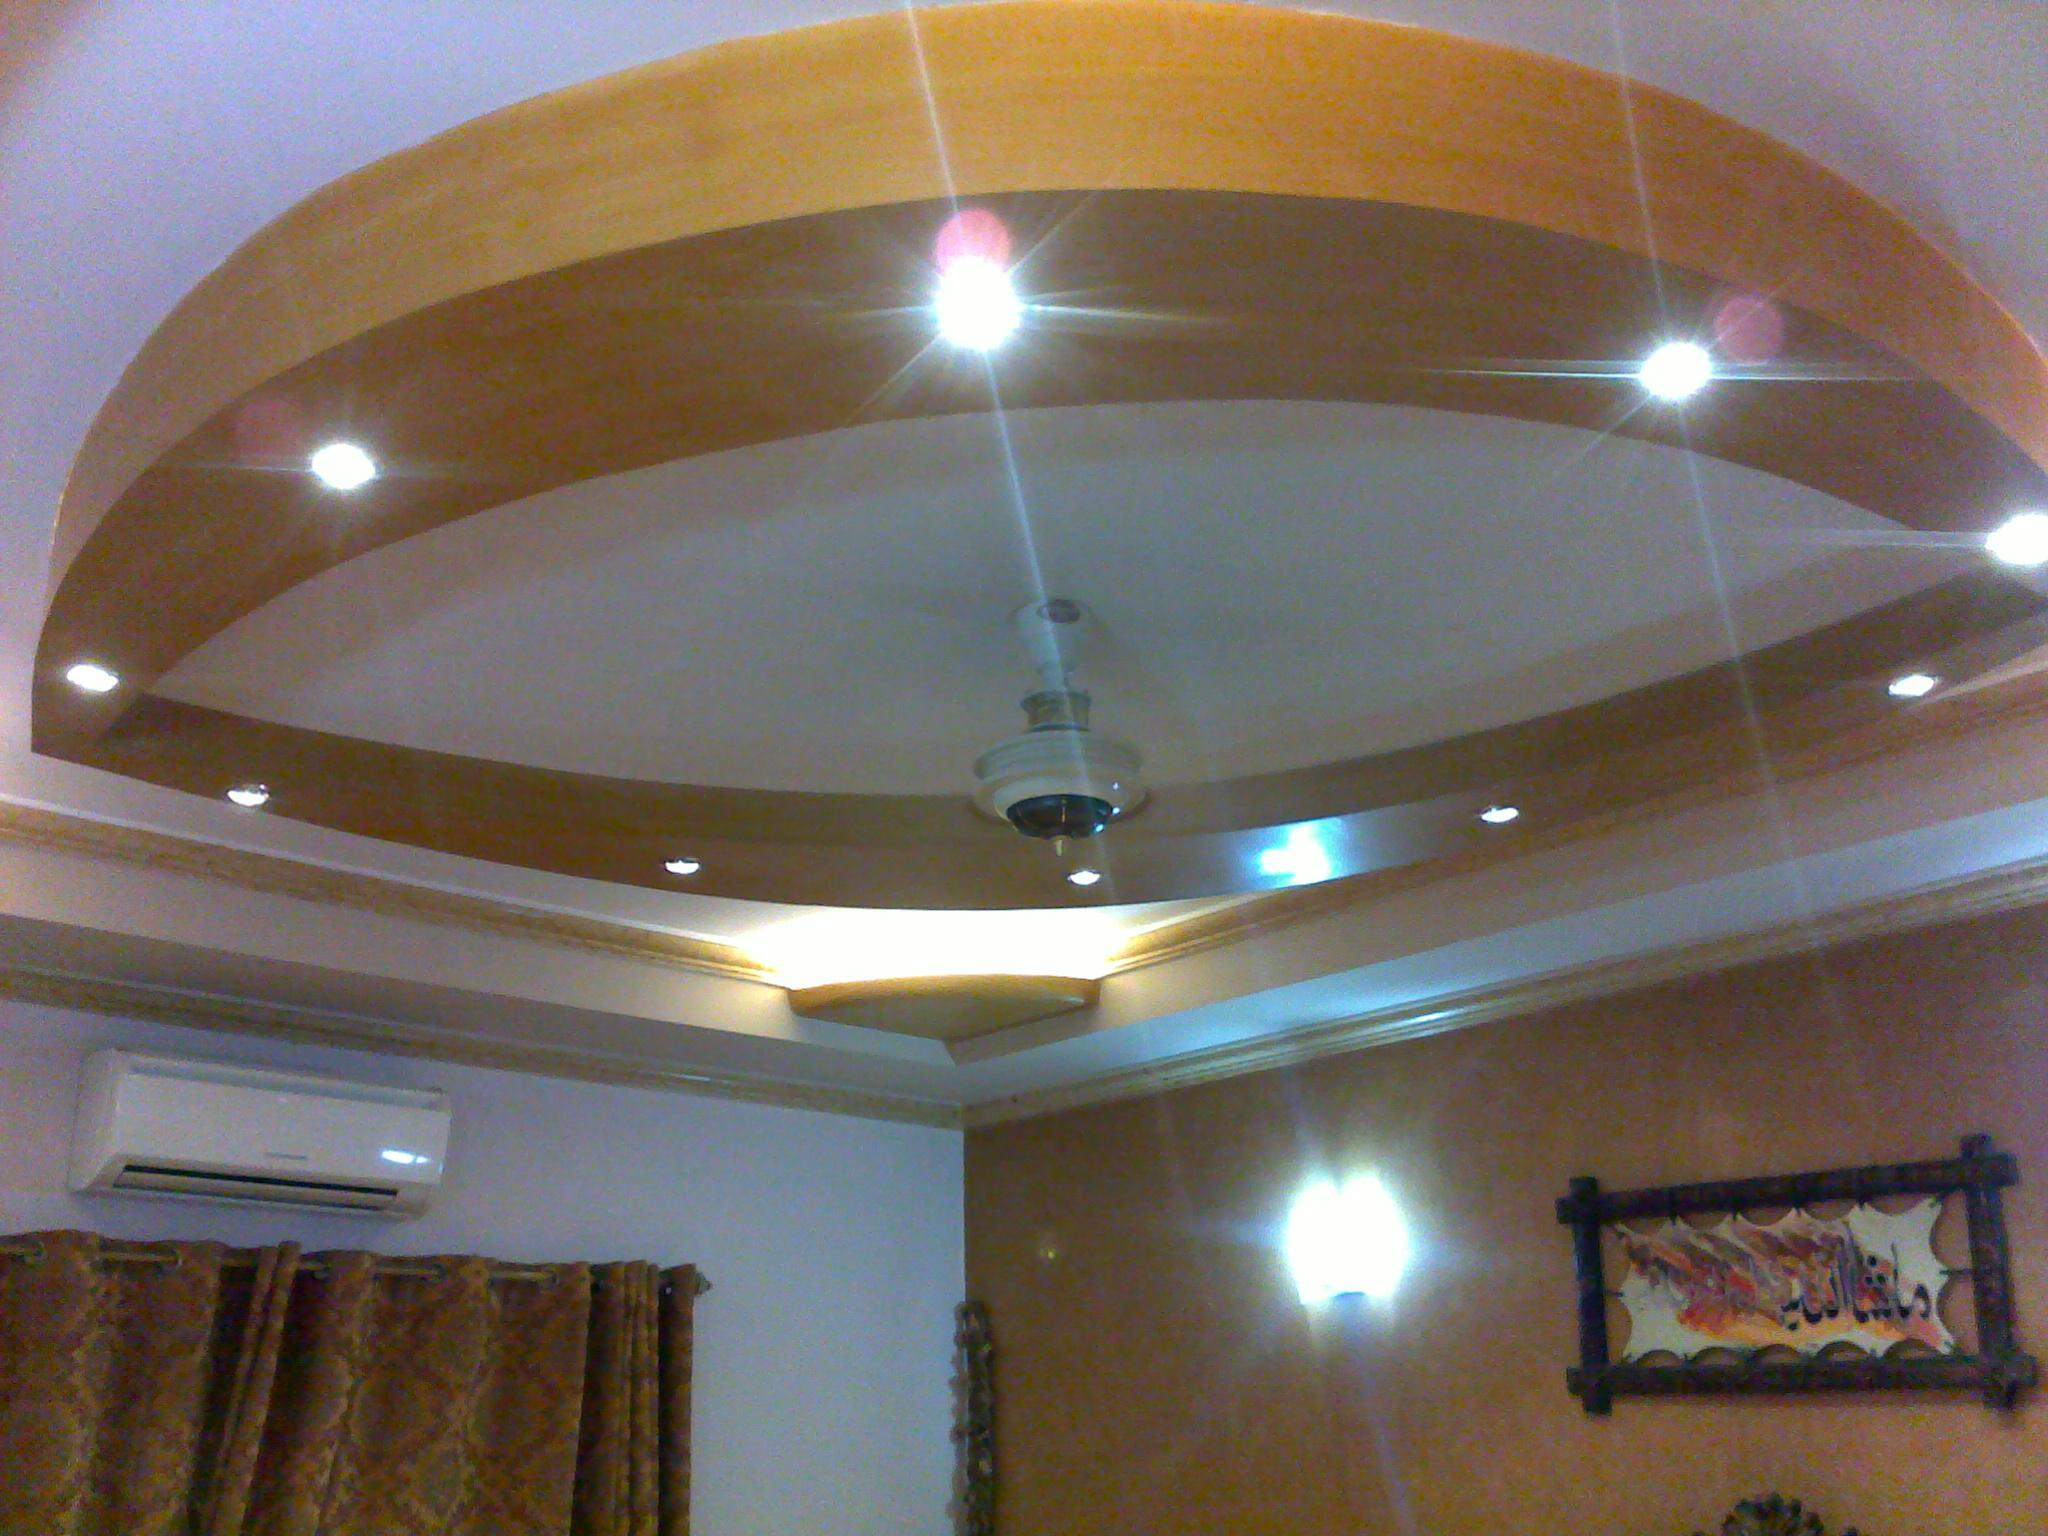 Wooden Ceiling Designs For Living Room Drop Ceiling Designs For Bedroom Room Design Inspirations Wood